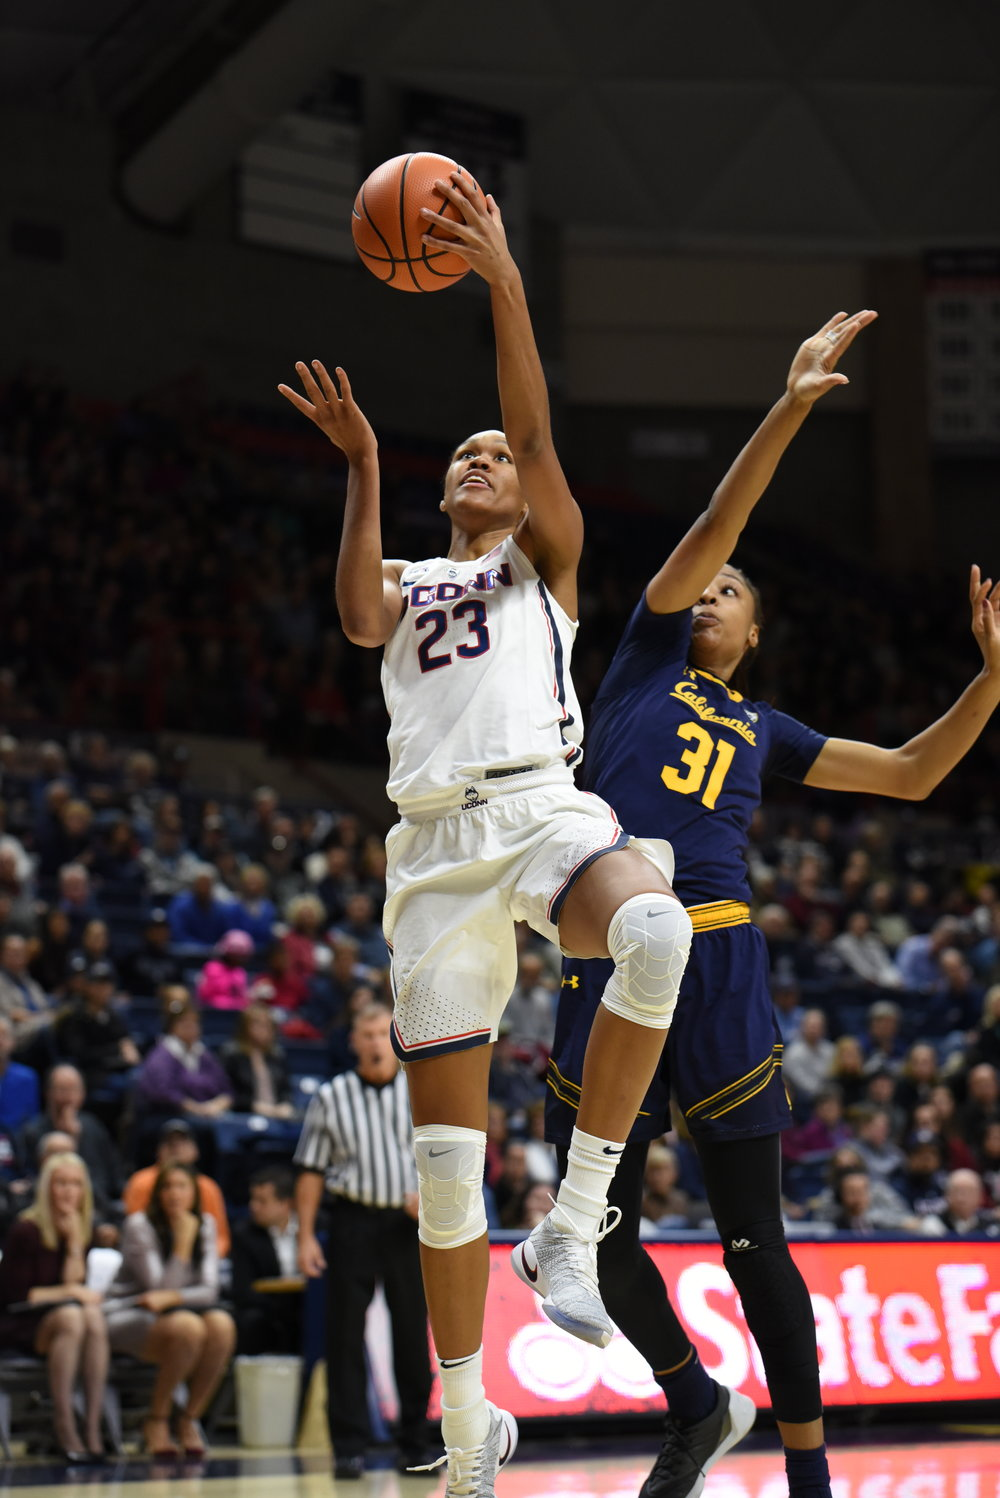 UConn guard/forward Azurá Stevens goes up for a layup in the Huskies' 82-47 win over California on Friday, Nov. 17 at Gampel Pavilion in Storrs, Connecticut. (Charlotte Lao/The Daily Campus)